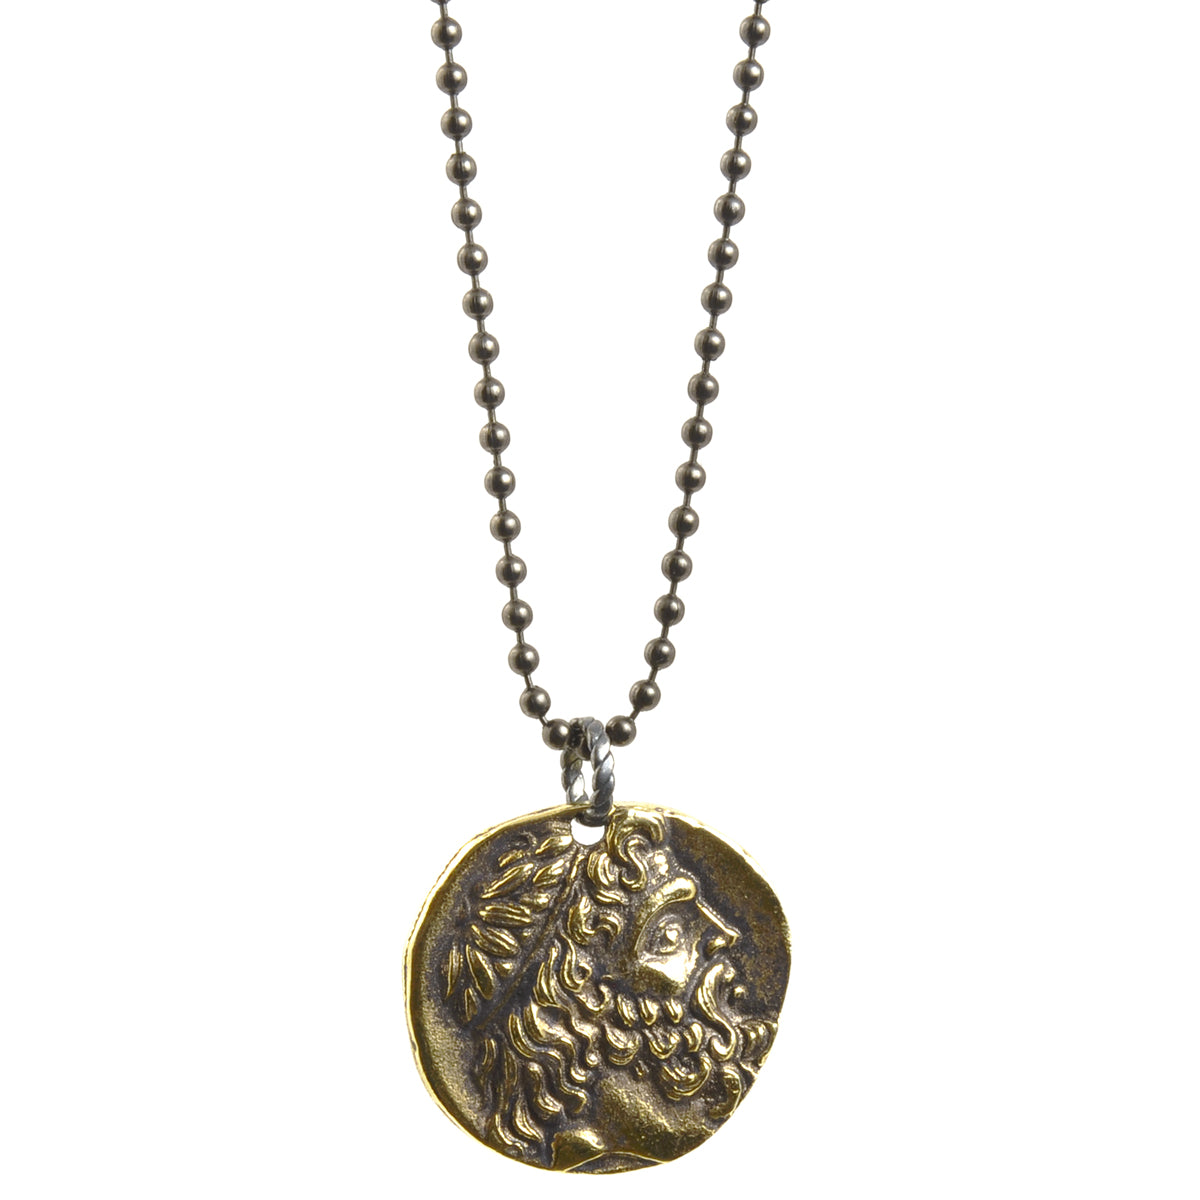 Simple-Antique Gold Greek Coin Ball Chain Necklace-30 Inches Camilla Blue